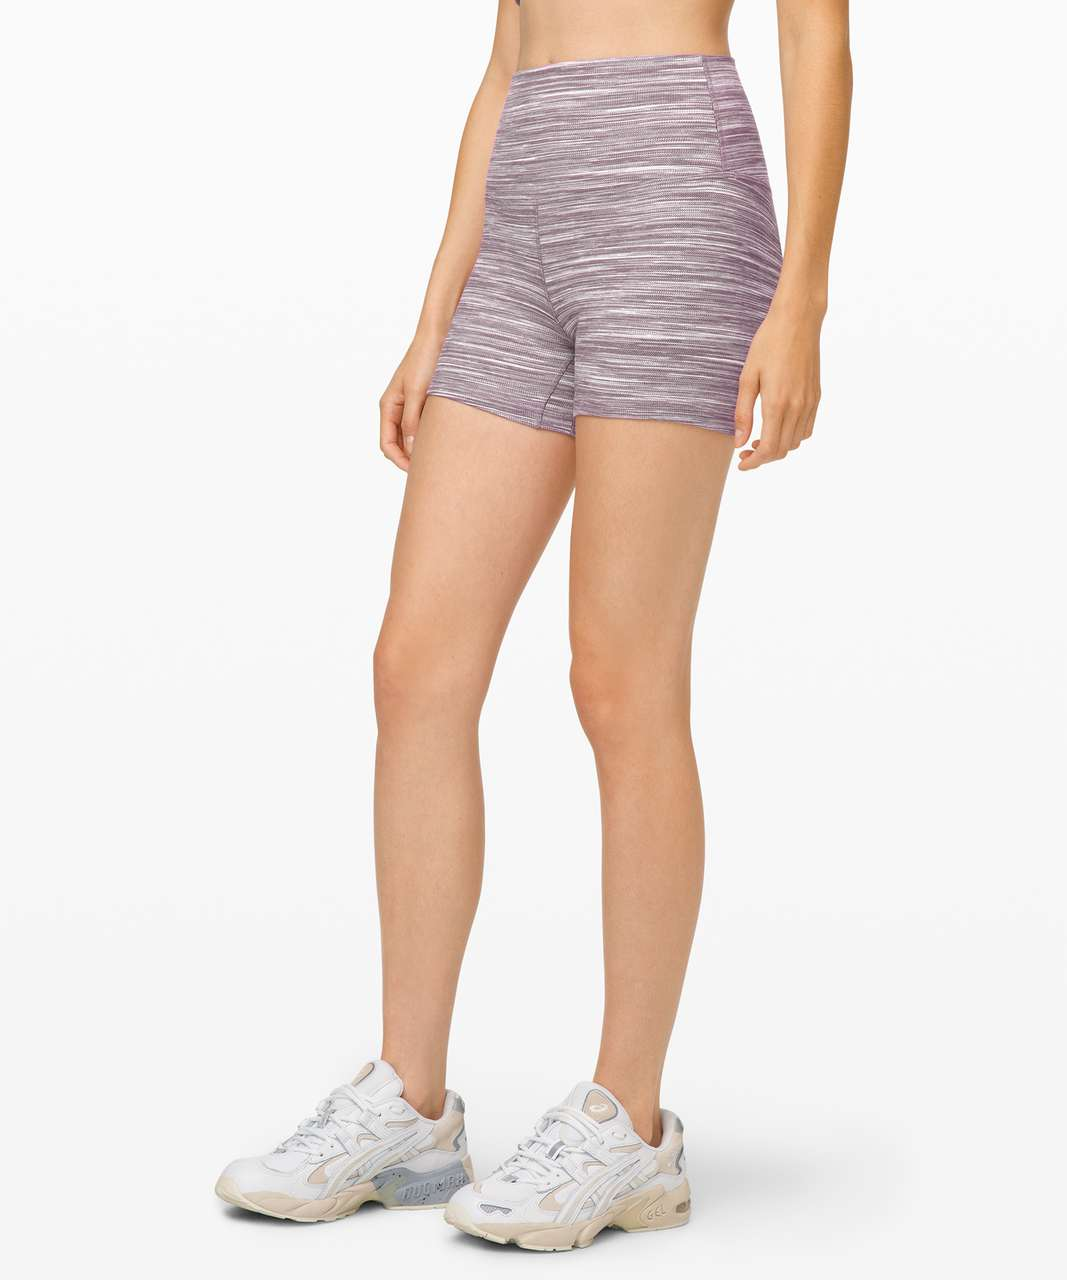 "Lululemon Align Short *4"" - Mini Space Dye Herringbone Jacquard Heathered Black Cherry White / Black Cherry"